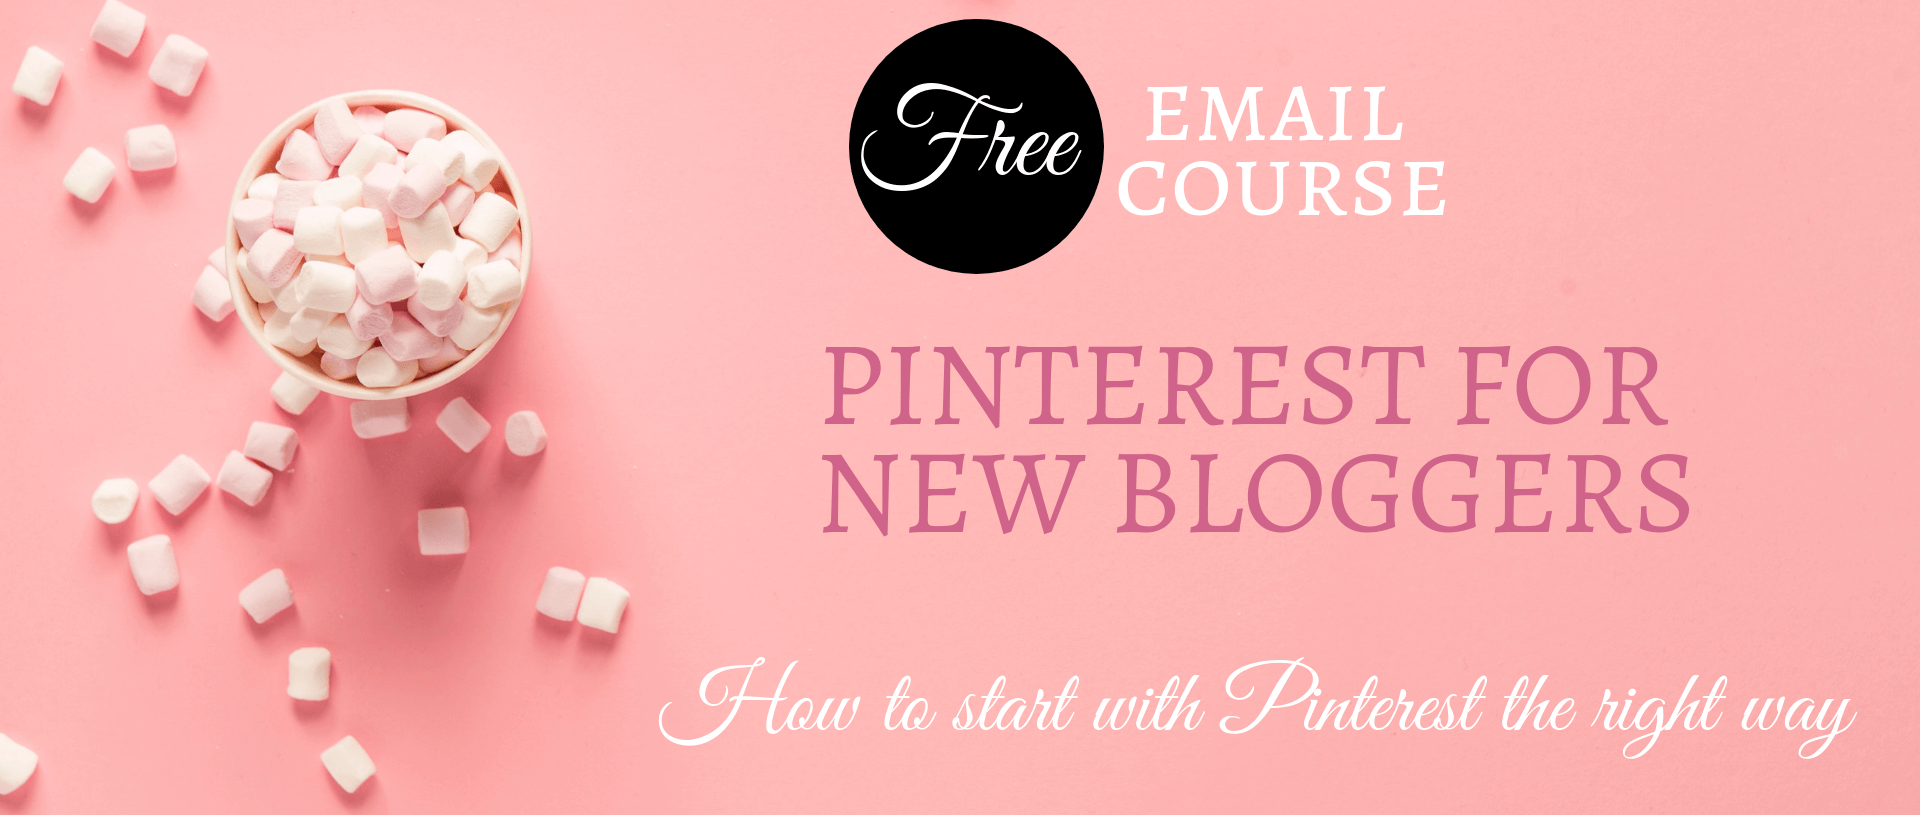 Pinterest for new bloggers free course.